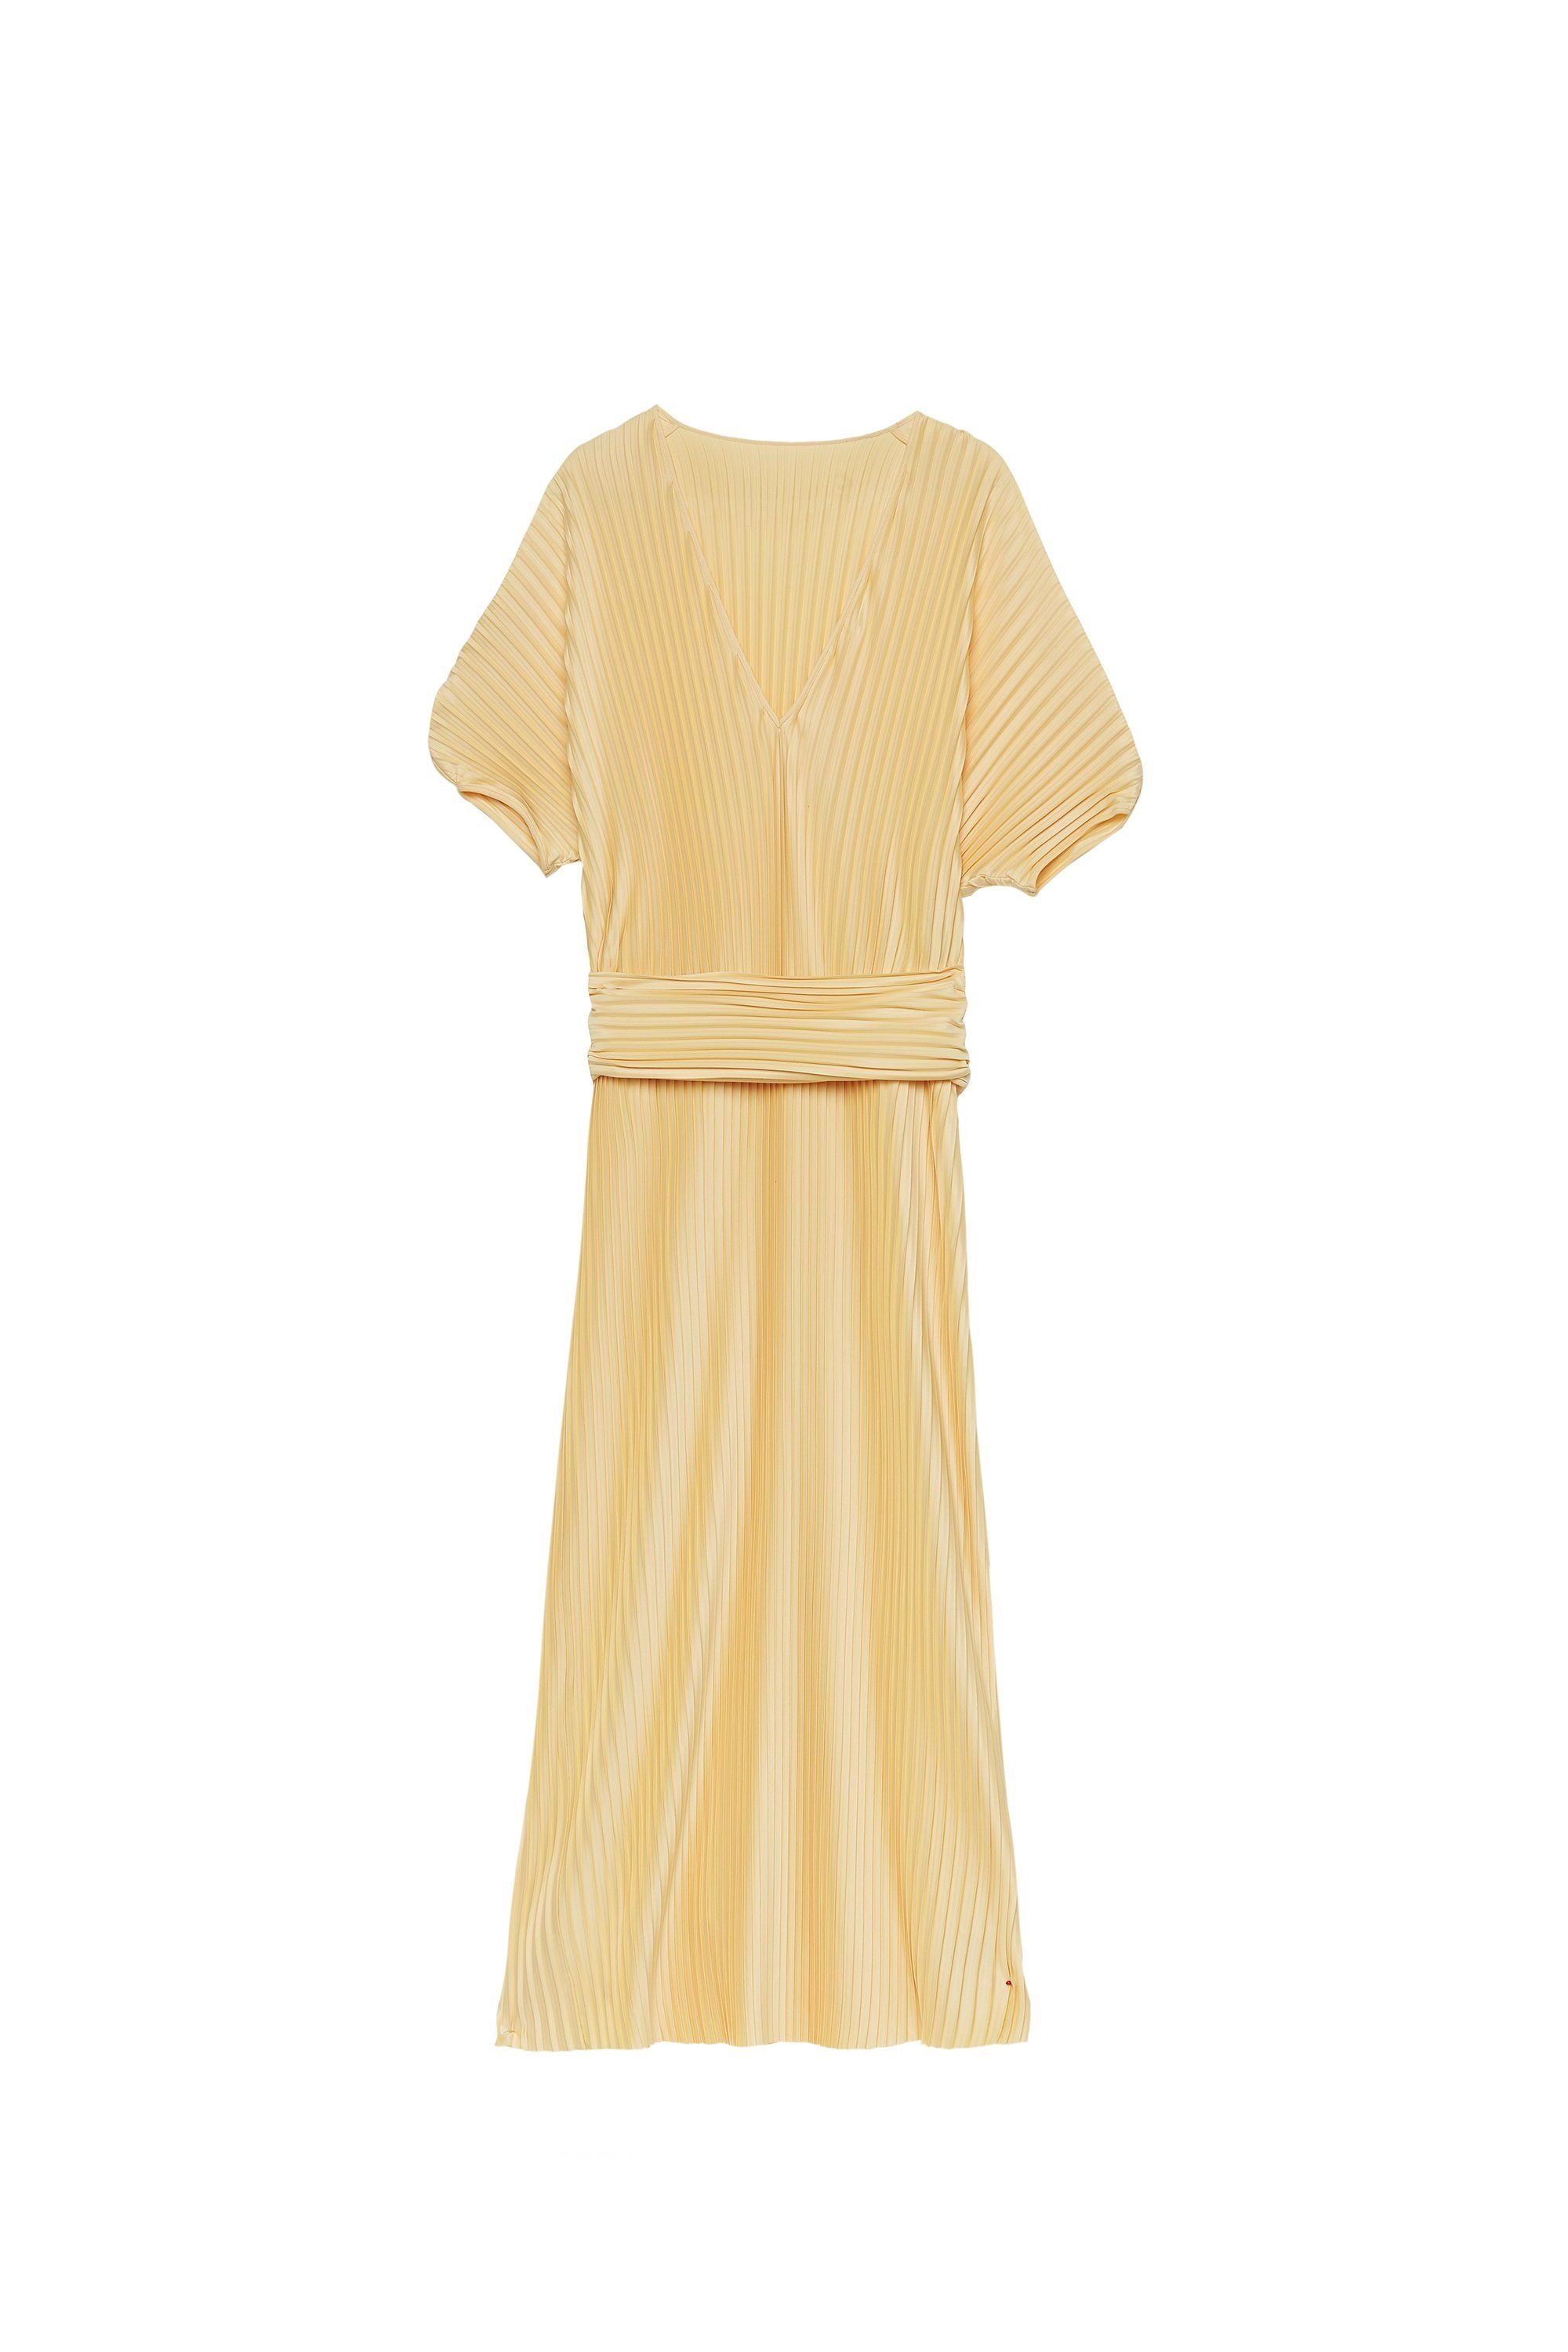 ITACHI DRESS - LIGHT YELLOW Dress Stylein